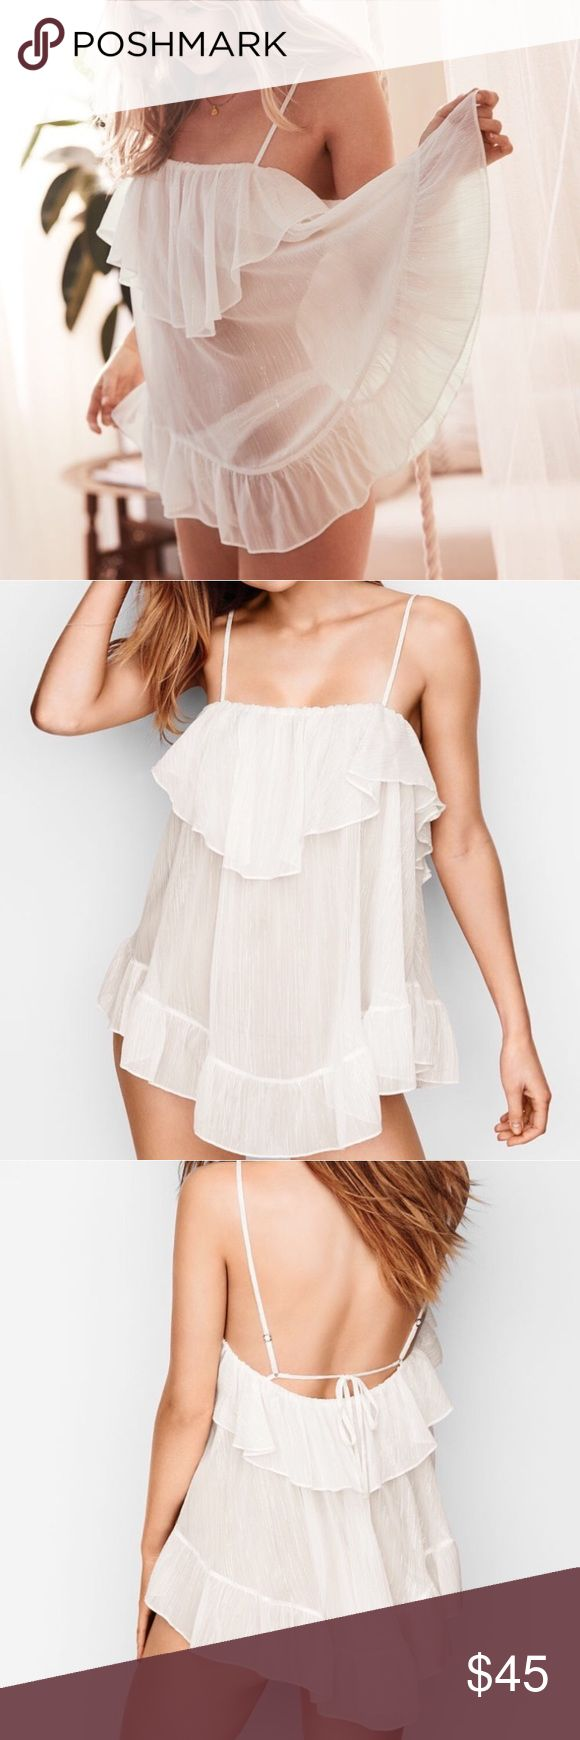 Victoria's Secret chiffon ruffle white babydoll! Brand new with tags! Chiffon material. White color with metallic specks within the thread. Very sexy and unique! Victoria's Secret Intimates & Sleepwear Chemises & Slips